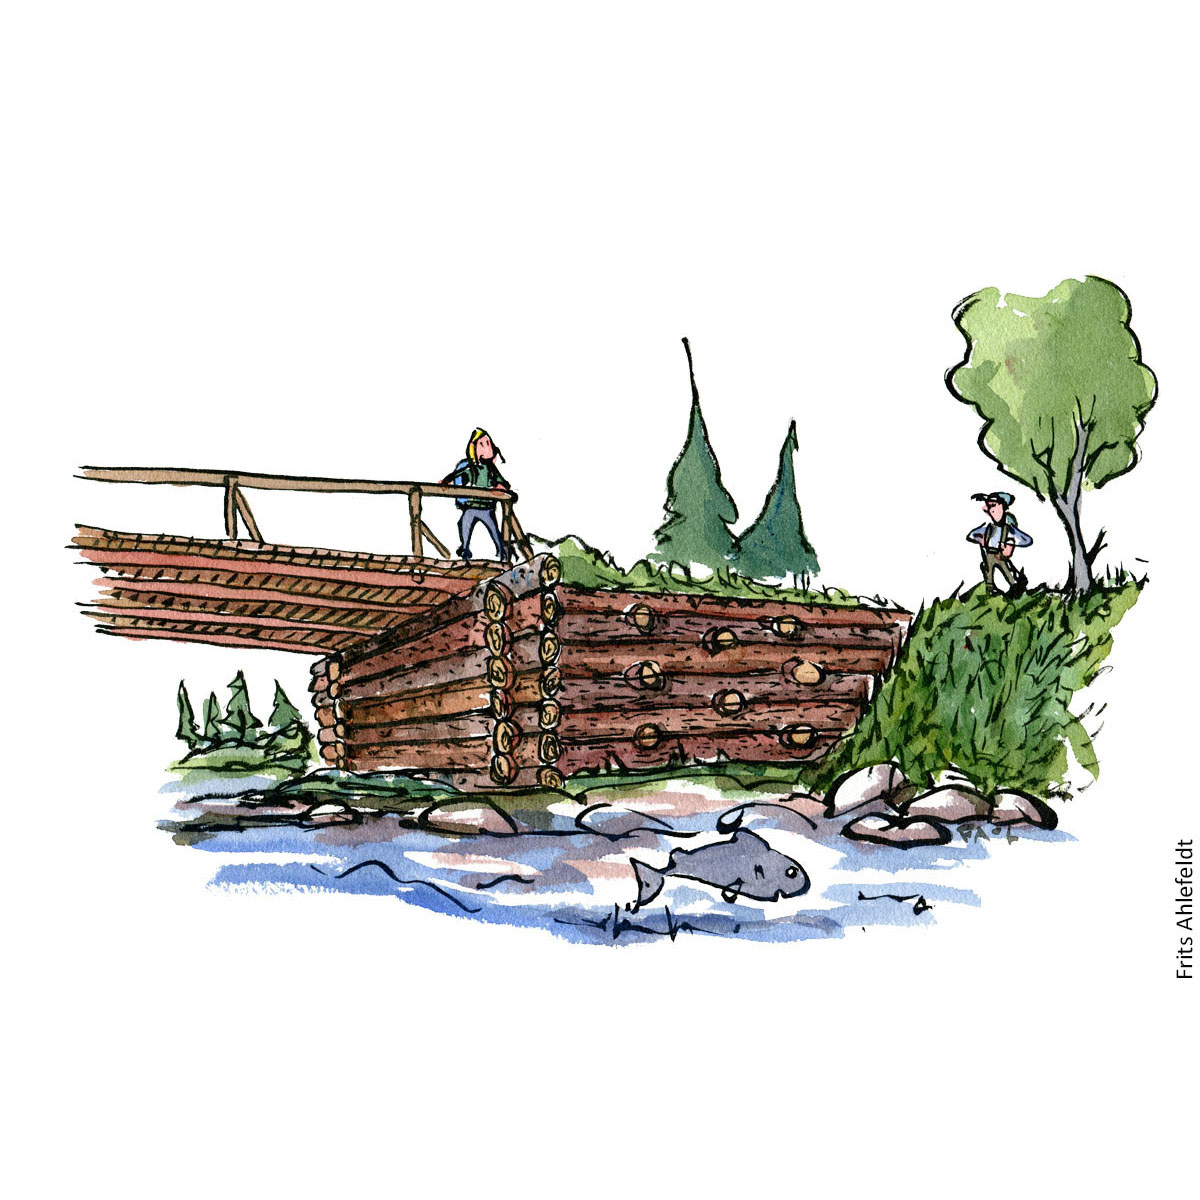 Illustration of solid wood bridge construction. Illustration by Frits Ahlefeldt